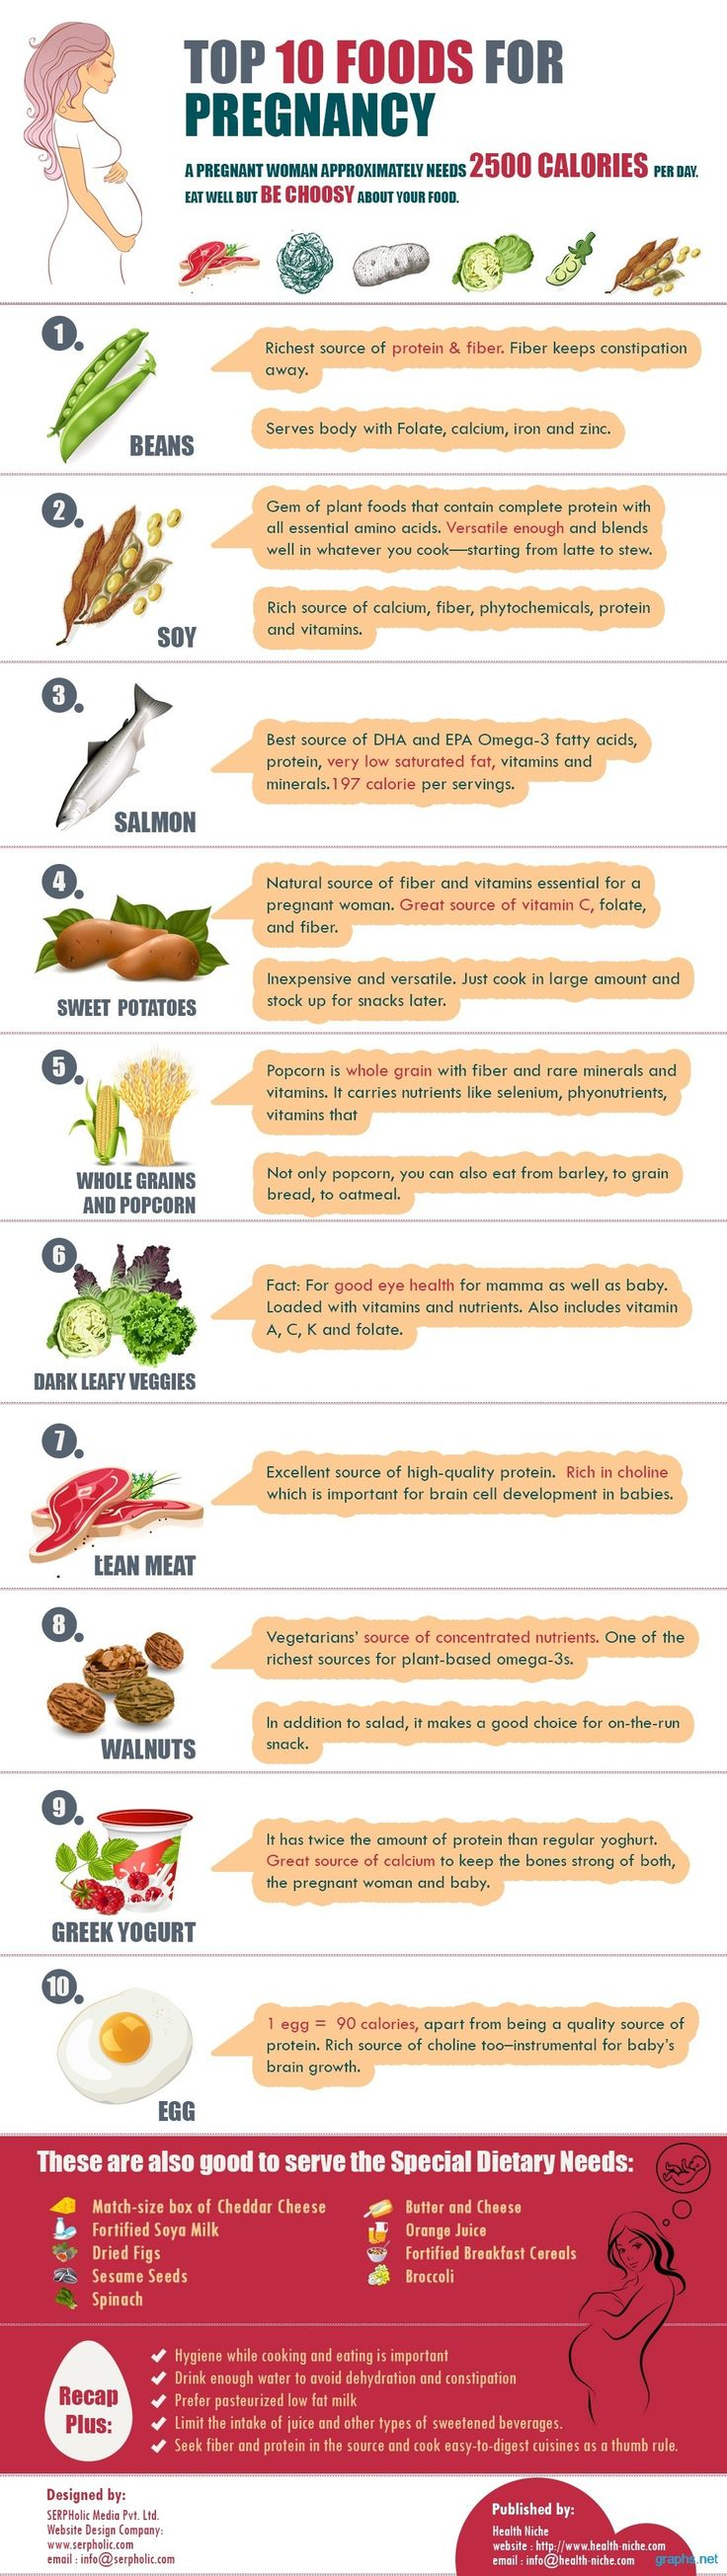 I'm NOT prego, but this list is good, AS LONG AS ITS ALL ORGANIC!!!!!!  For starters, soy can lead to cancer and GMO corn, which is 90% of grocery store corn can lead to severe allergies in babies!!!  BE CAREFUL WHAT YOU EAT WHEN YOU ARE PREGNANT!!!!!!